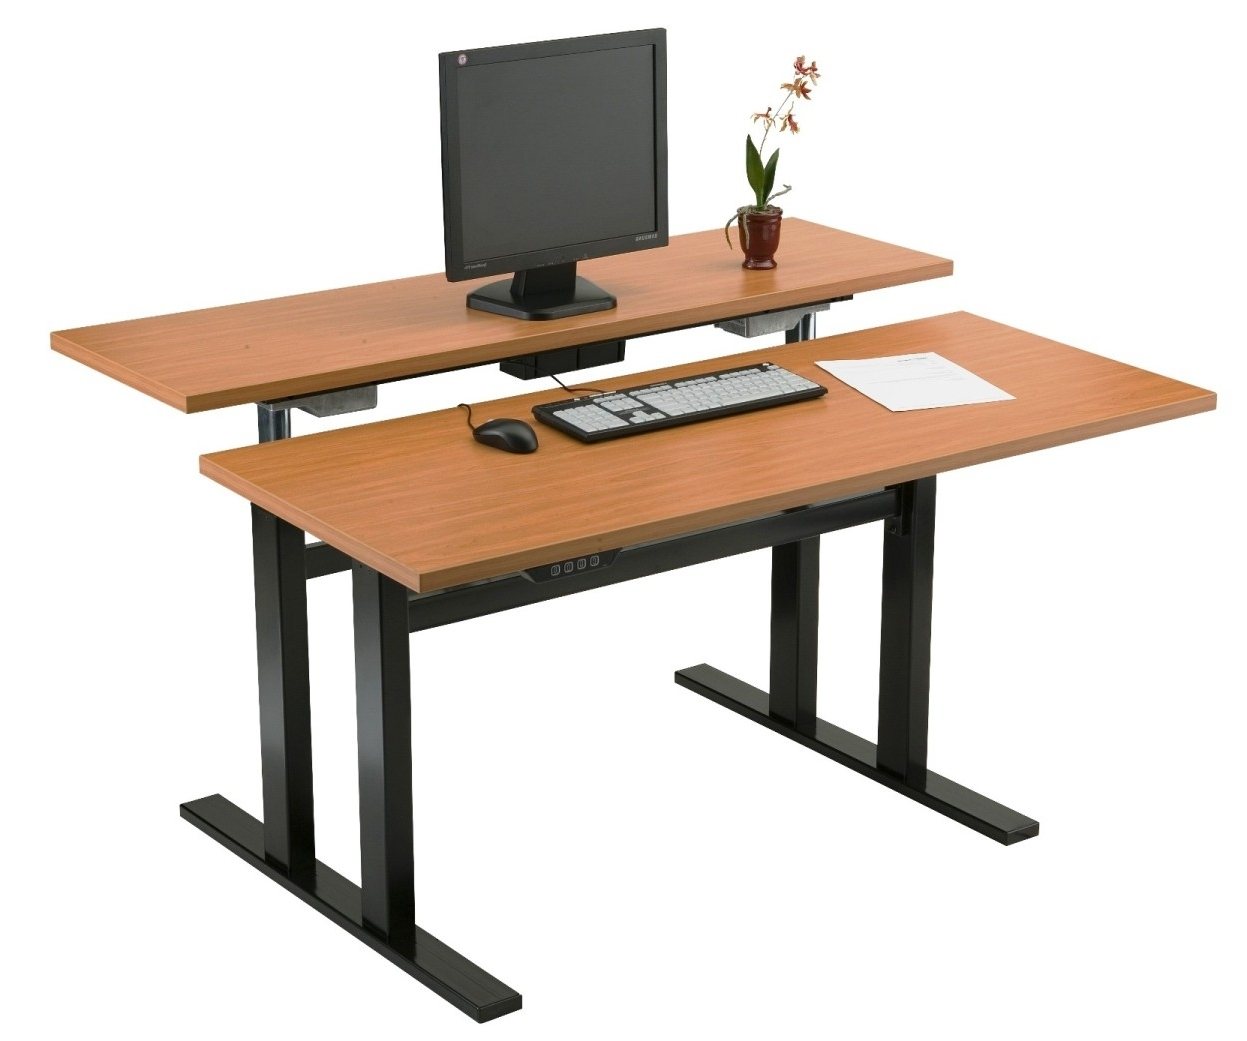 Most Popular Ergonomic Computer Desks Pertaining To Mobile Adjustable Height Computer Workstation With Caster Wheels (View 12 of 20)